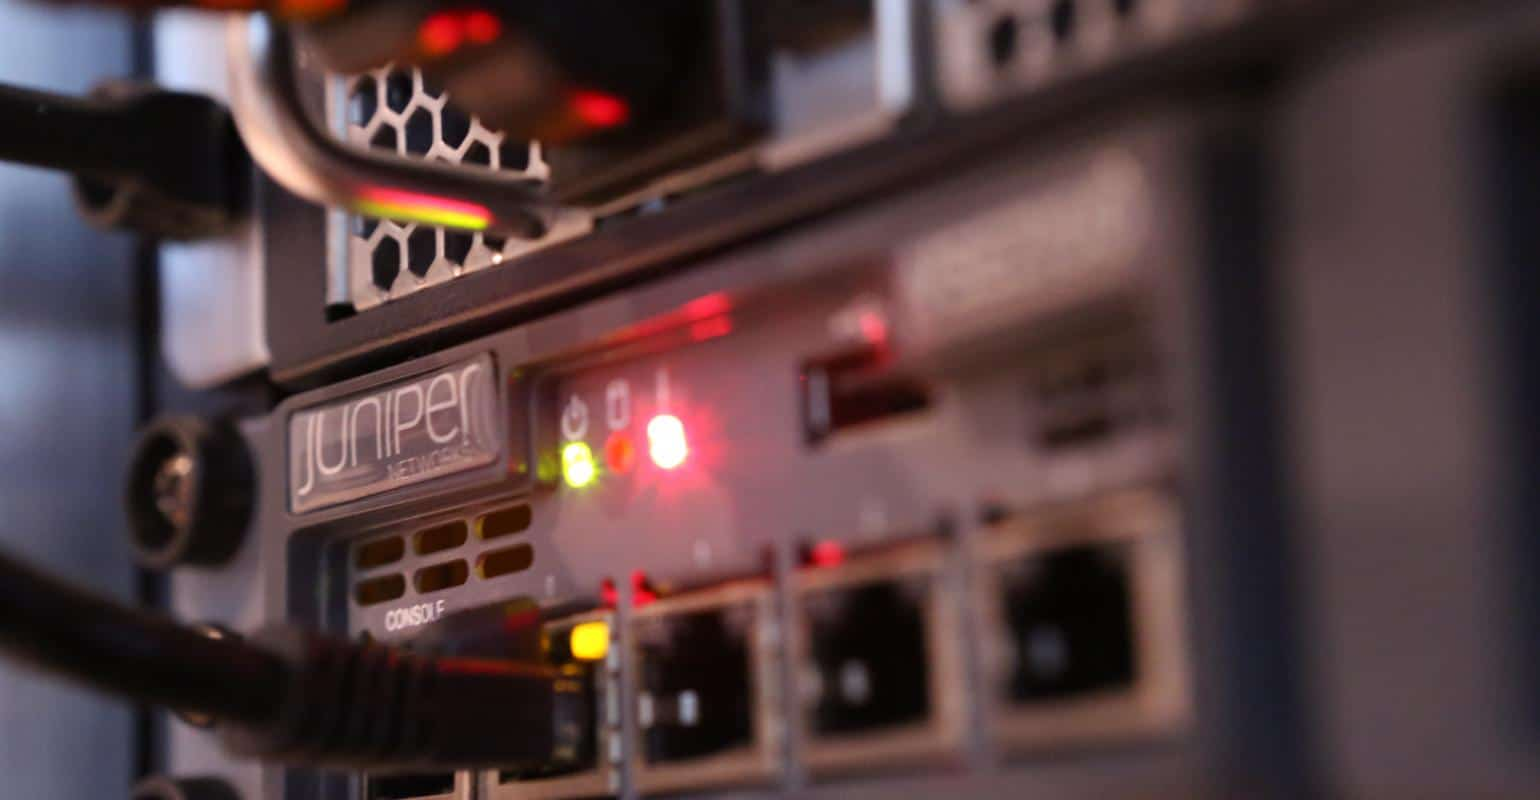 Evaluating Juniper Networks, Inc. (NYSE:JNPR) Financials And Stock Performance